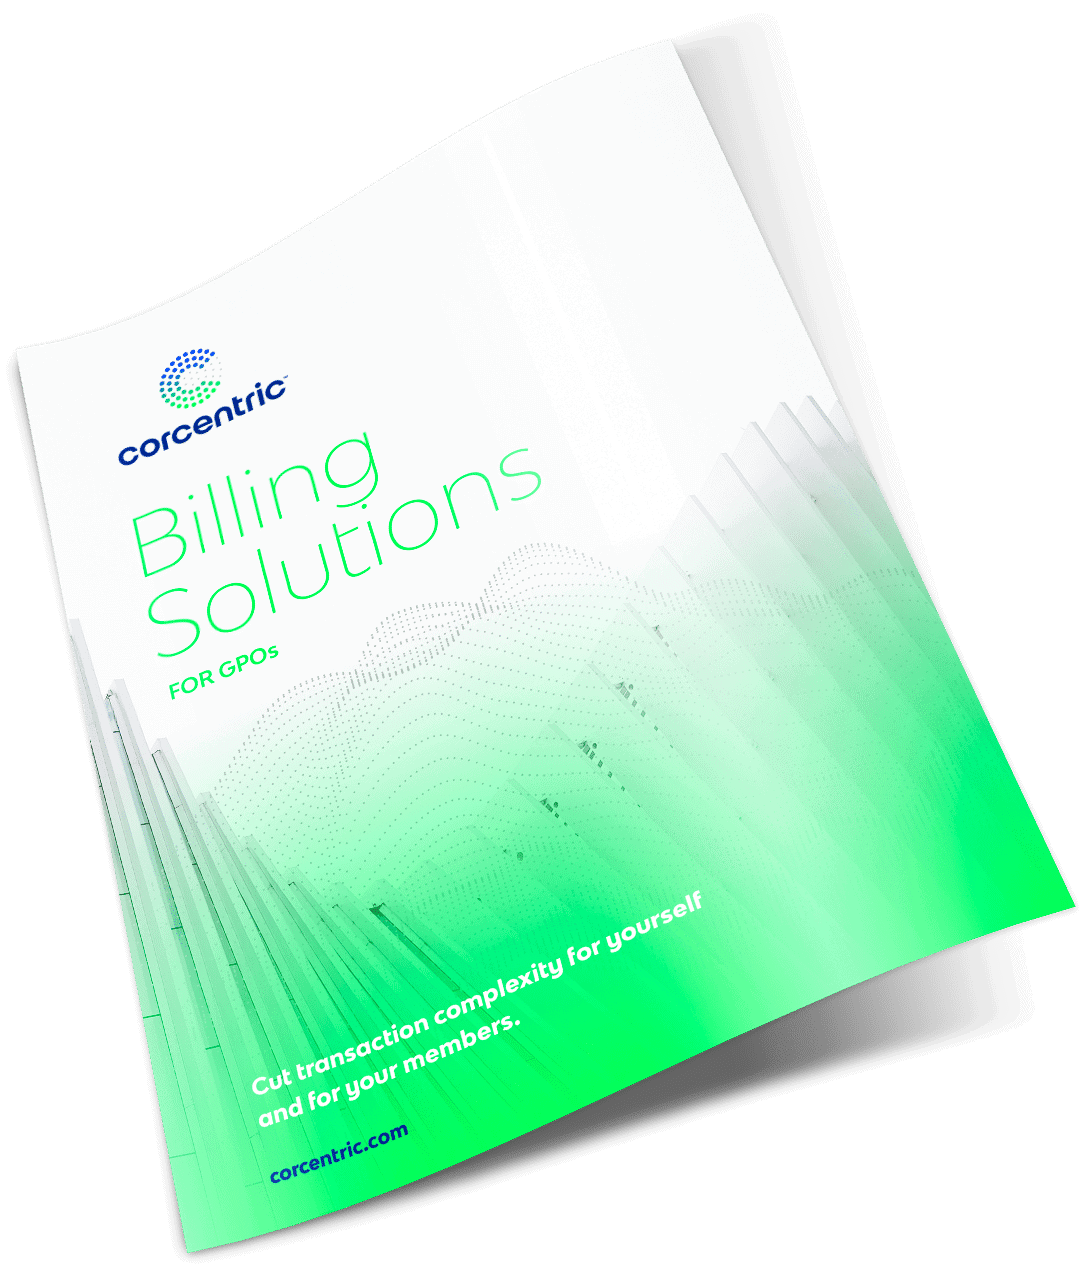 white-paper-billing-solutions-for-gpos-from-corcentric-asset